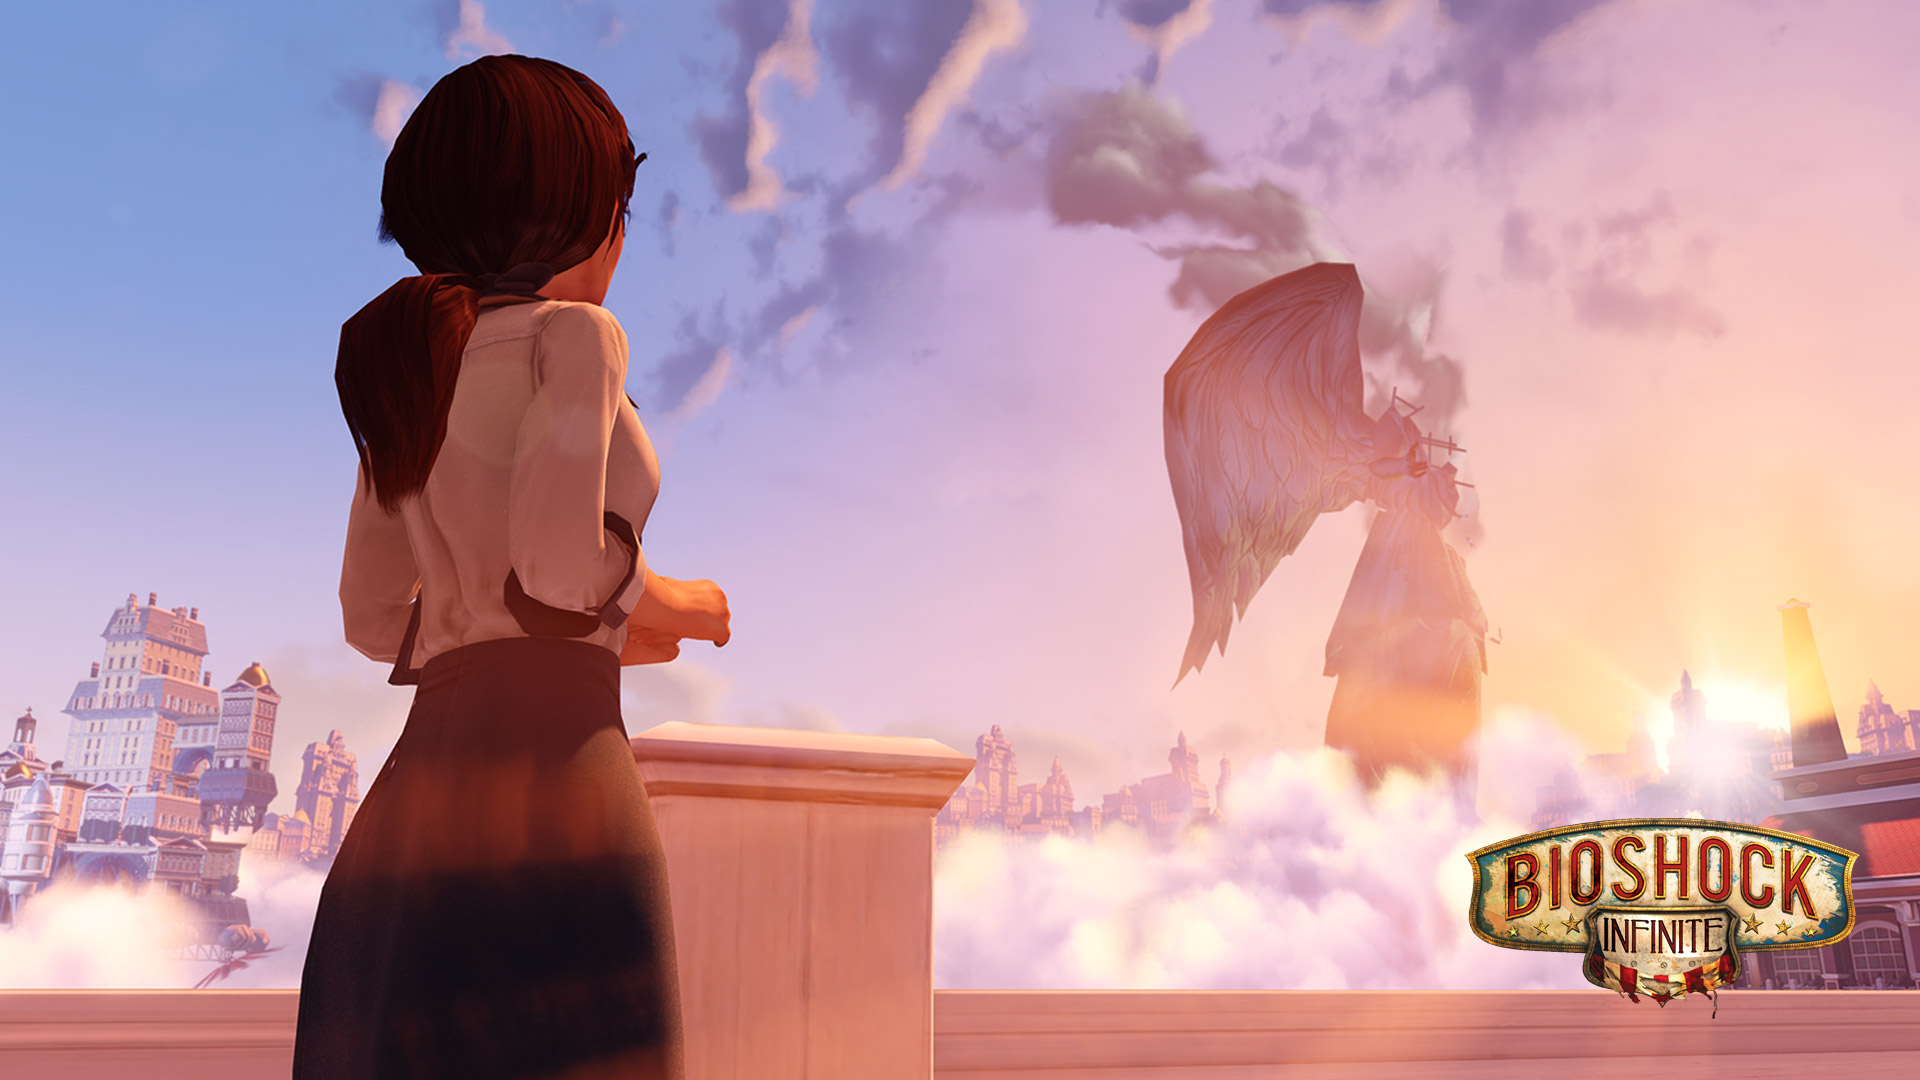 Bioshock Infinite Wallpaper 11